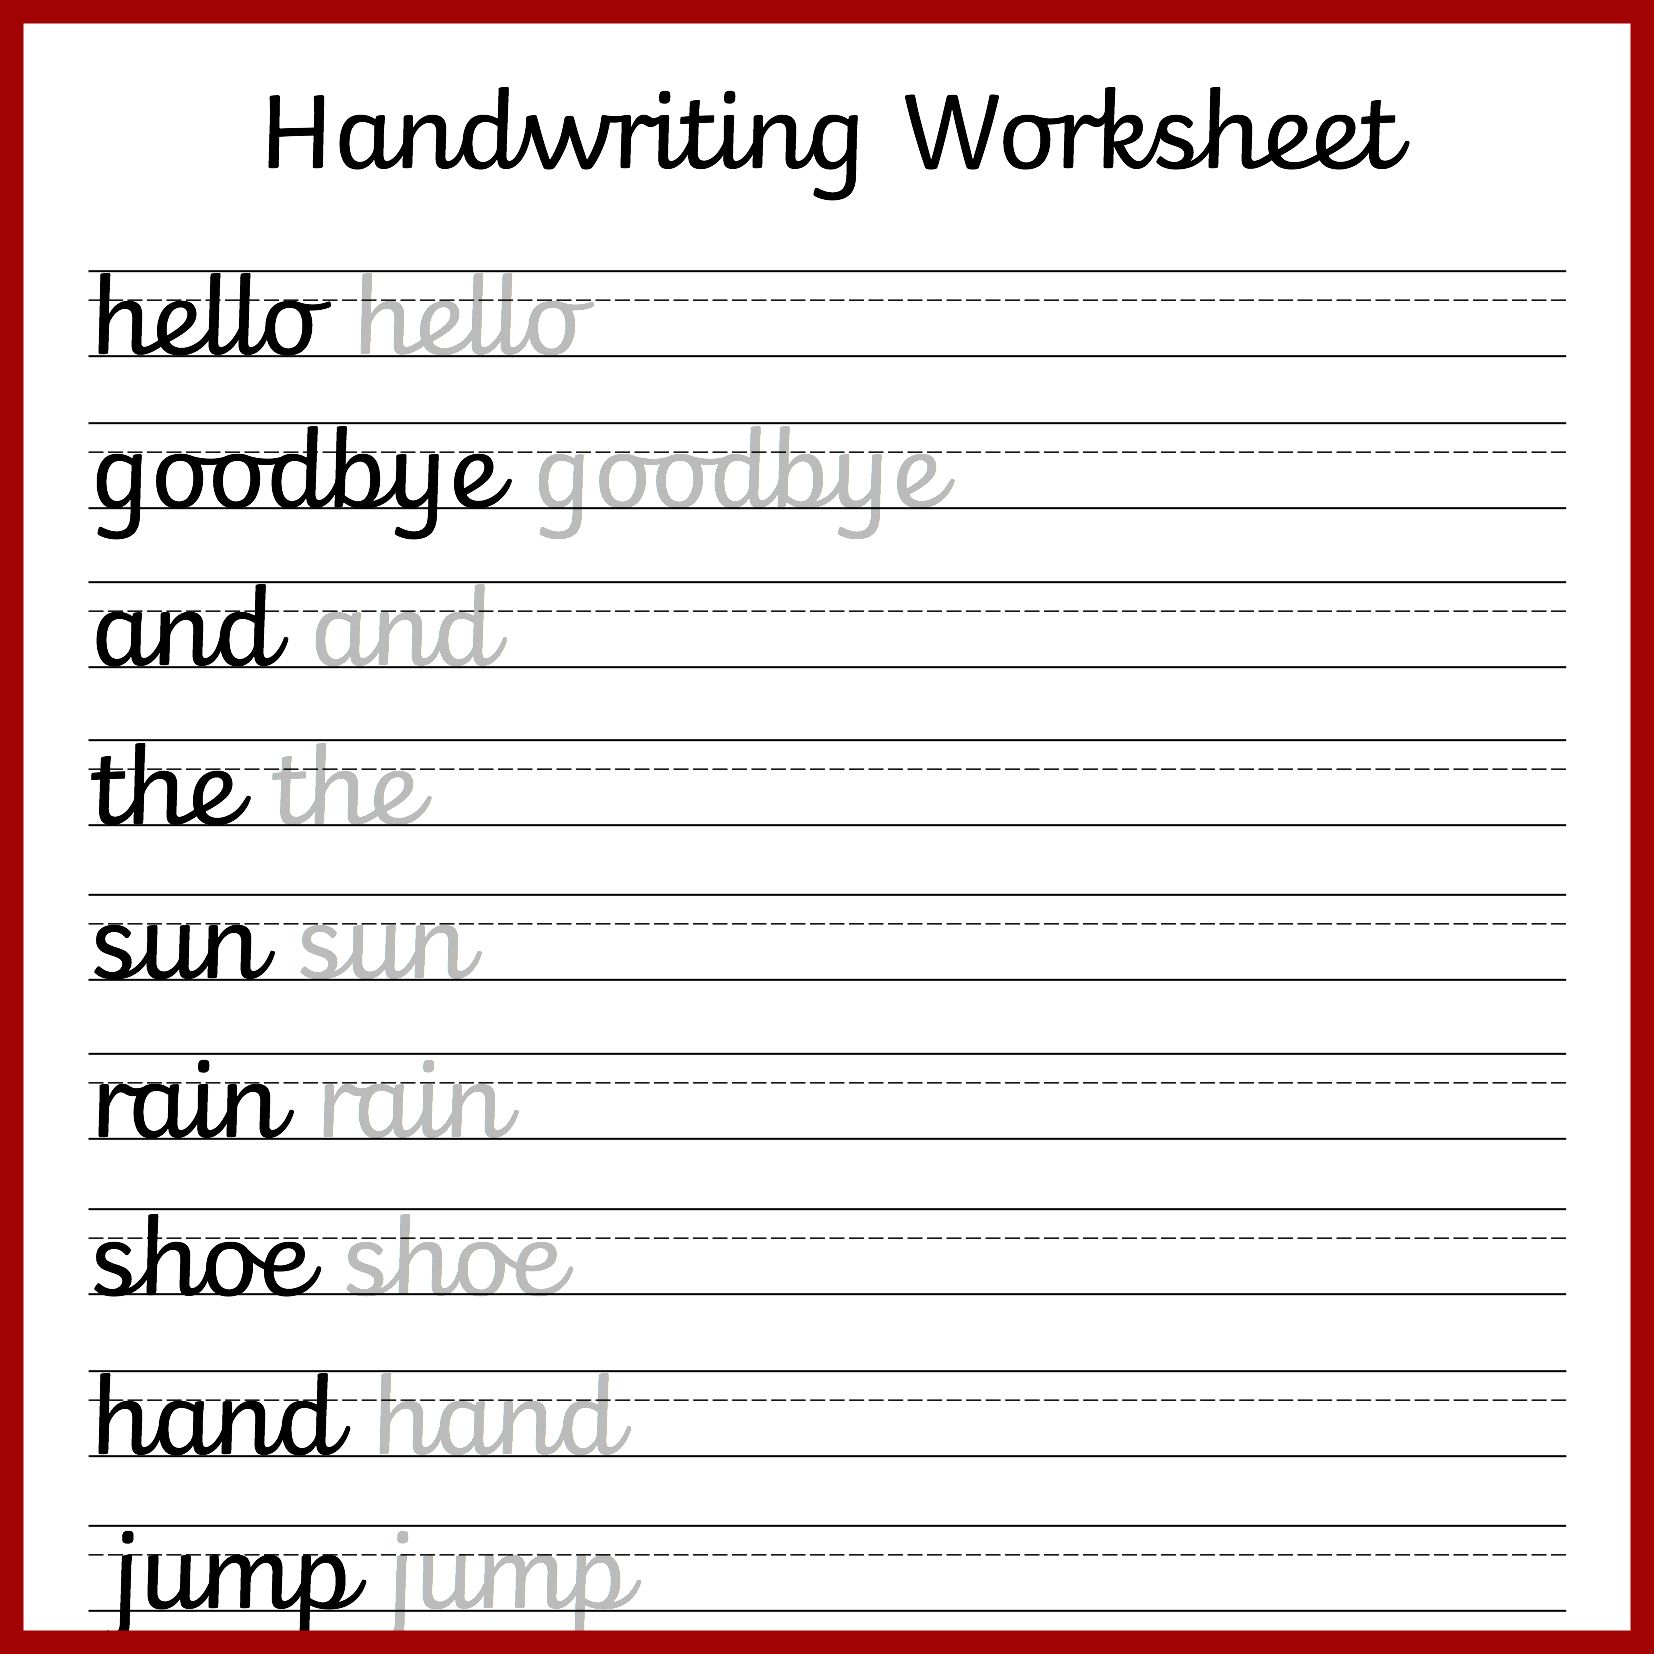 Cursive Handwriting Worksheets – Free Printable! ⋆ Mama Geek - Free | Printable Penmanship Worksheets